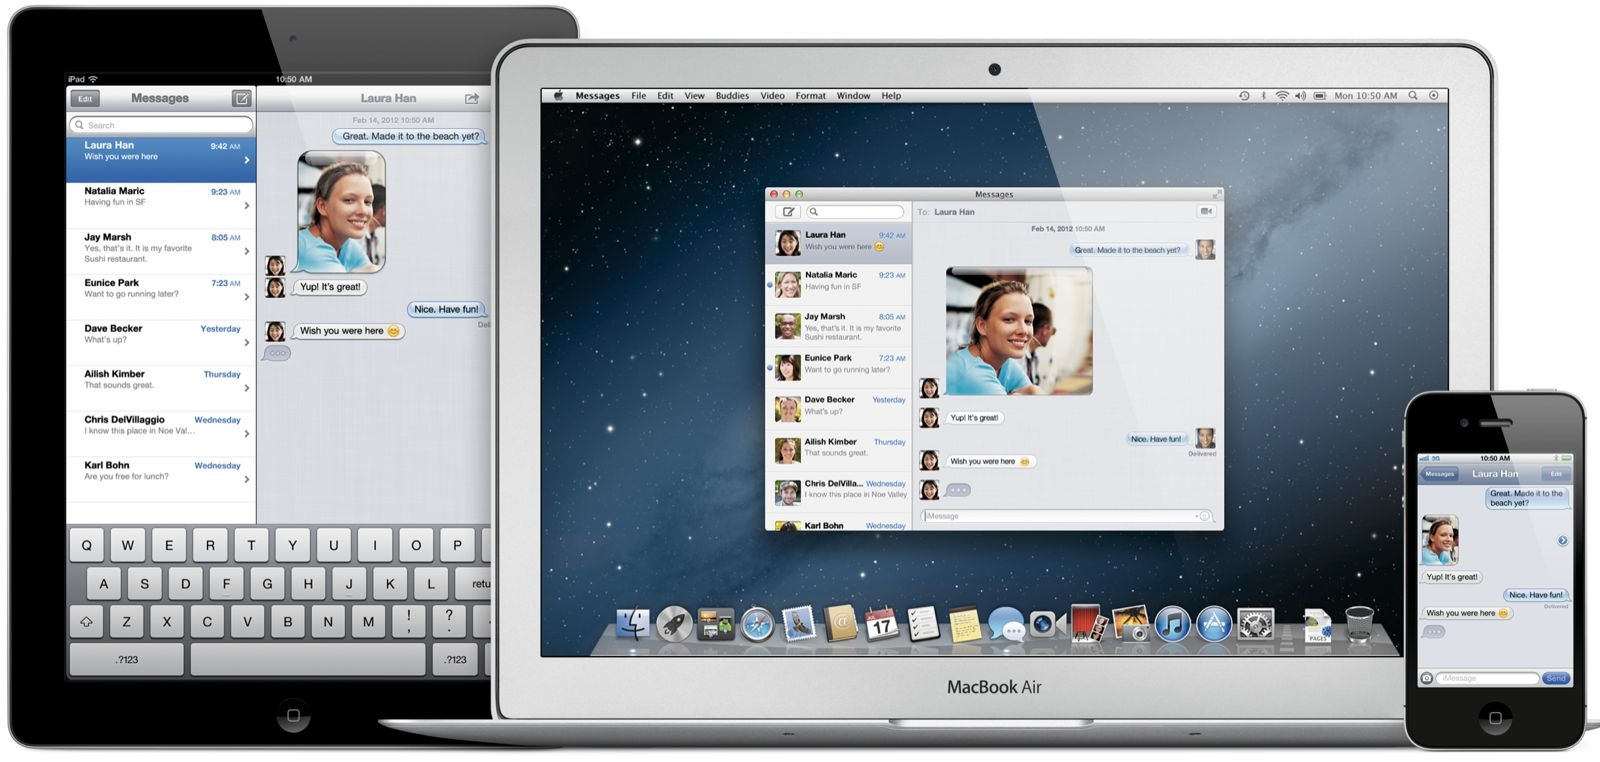 mac-os-x-mountain-lion-messages-ipad-iphone-macbook-air